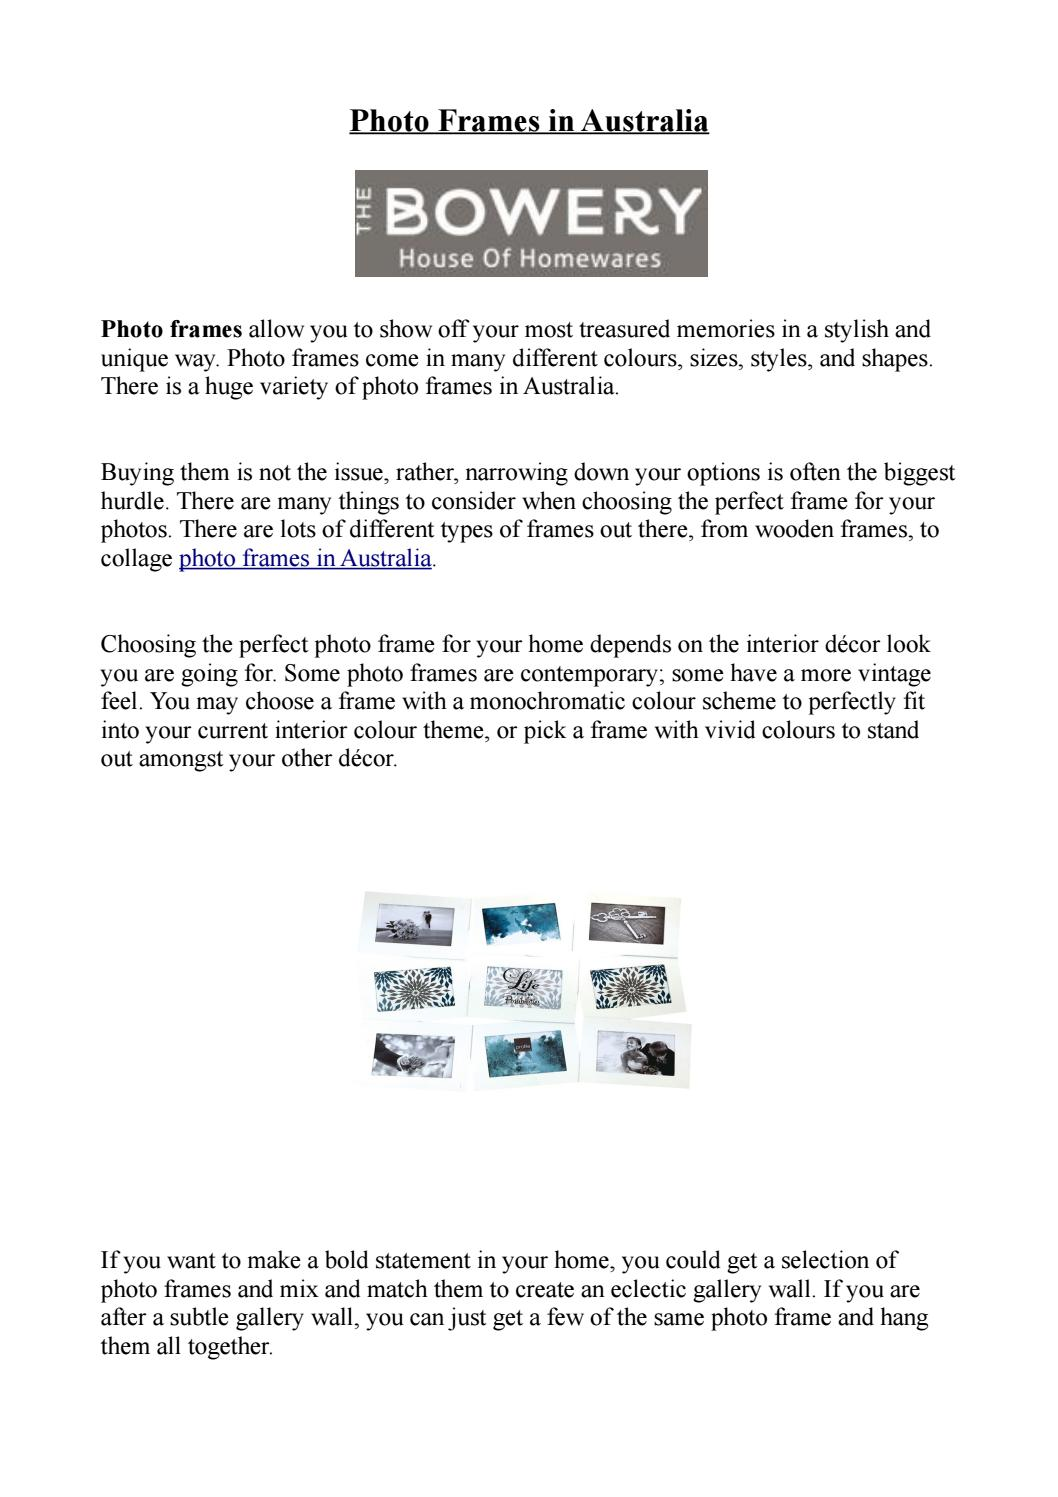 Picture Frames Australia Photo Frames In Australia The Bowery By The Bowery Issuu